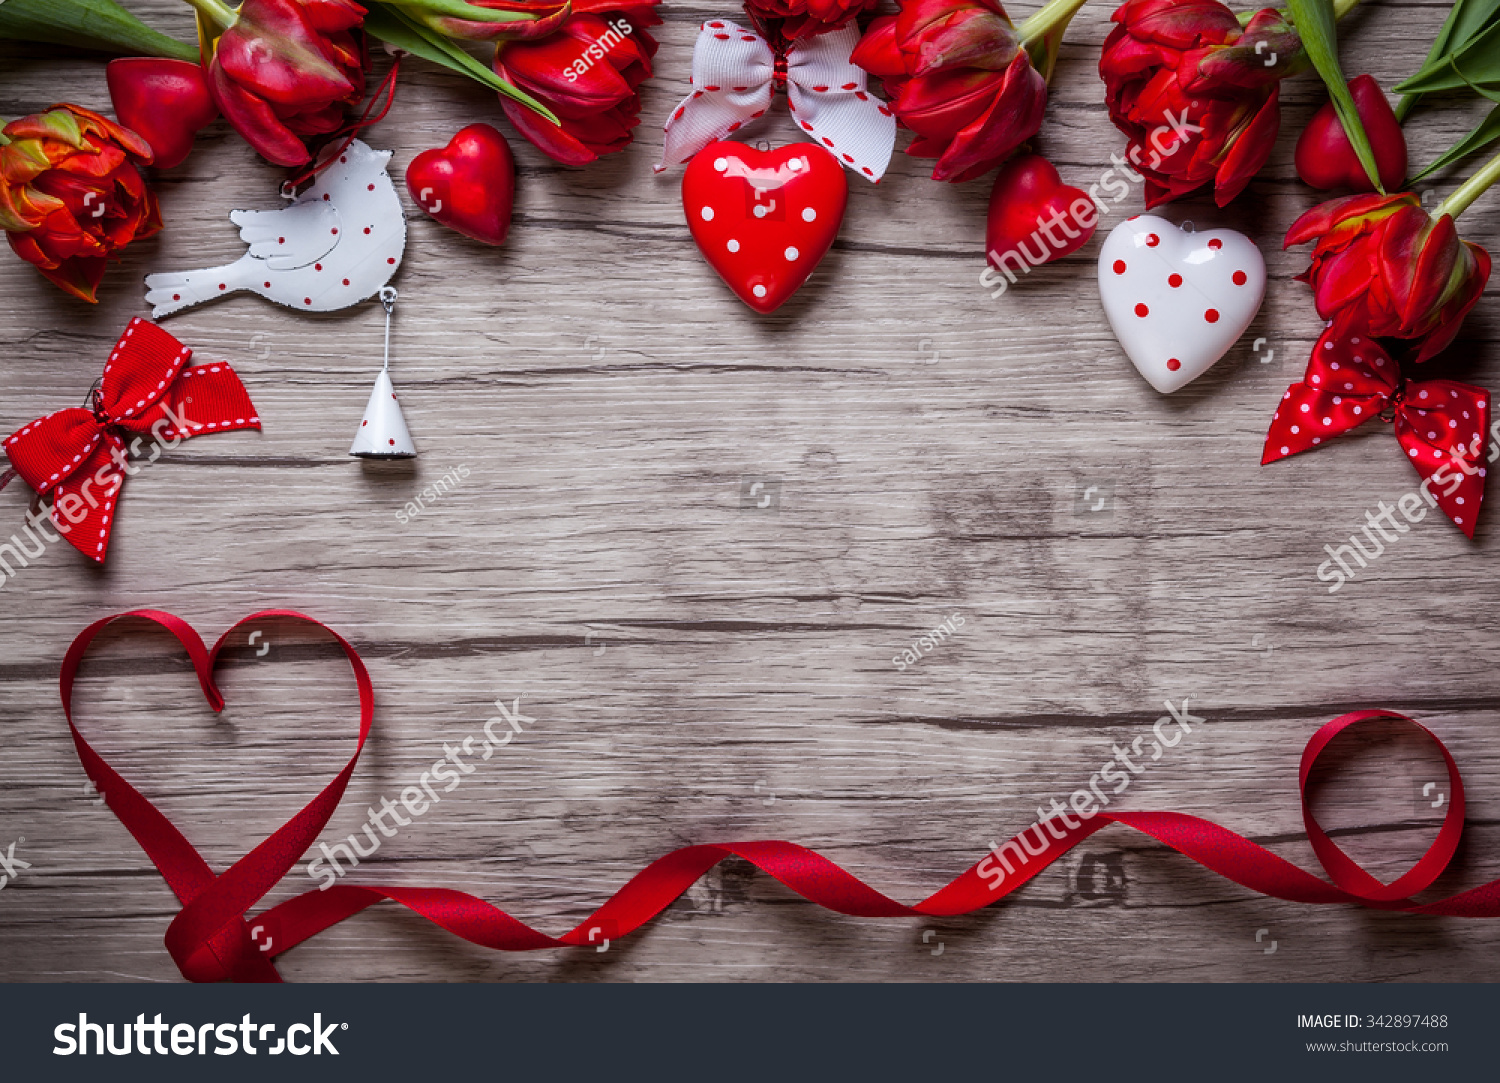 valentines day background chocolates hearts red stock. Black Bedroom Furniture Sets. Home Design Ideas